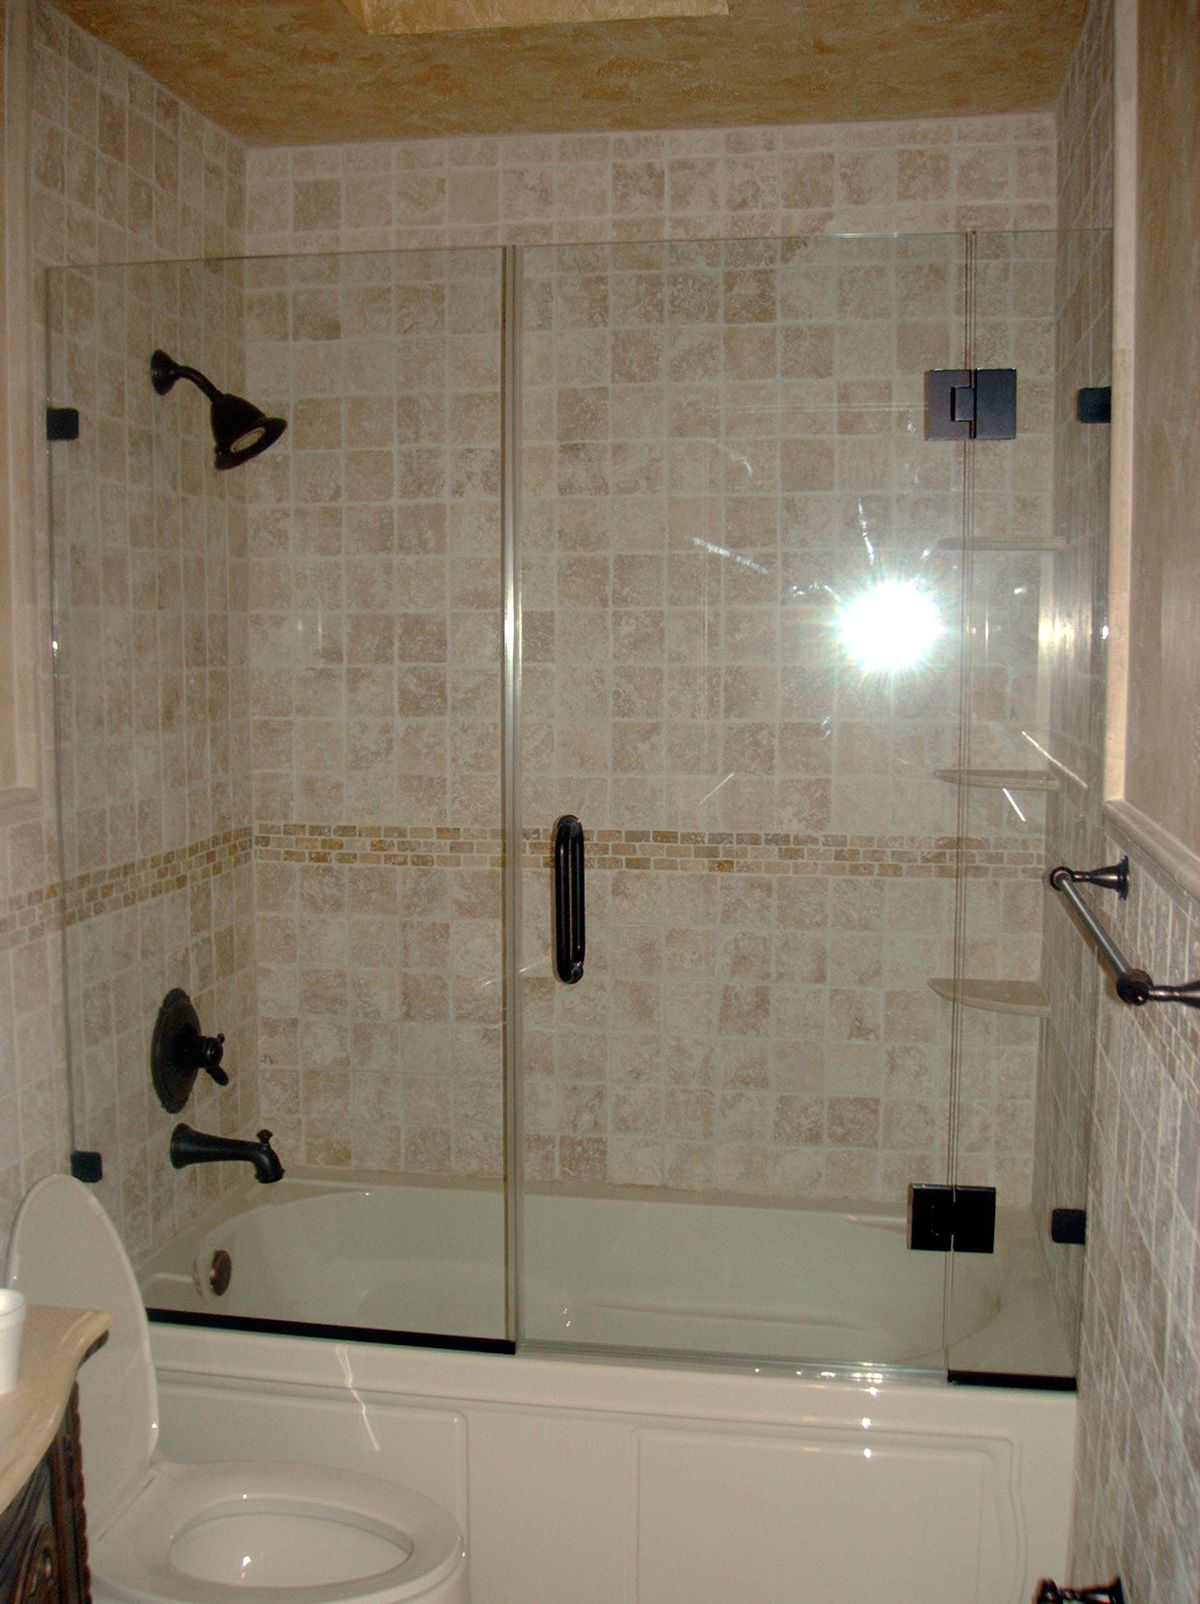 Best remodel for tub shower enclosure glass tub enclosures frameless tub doors bathtub shower doors